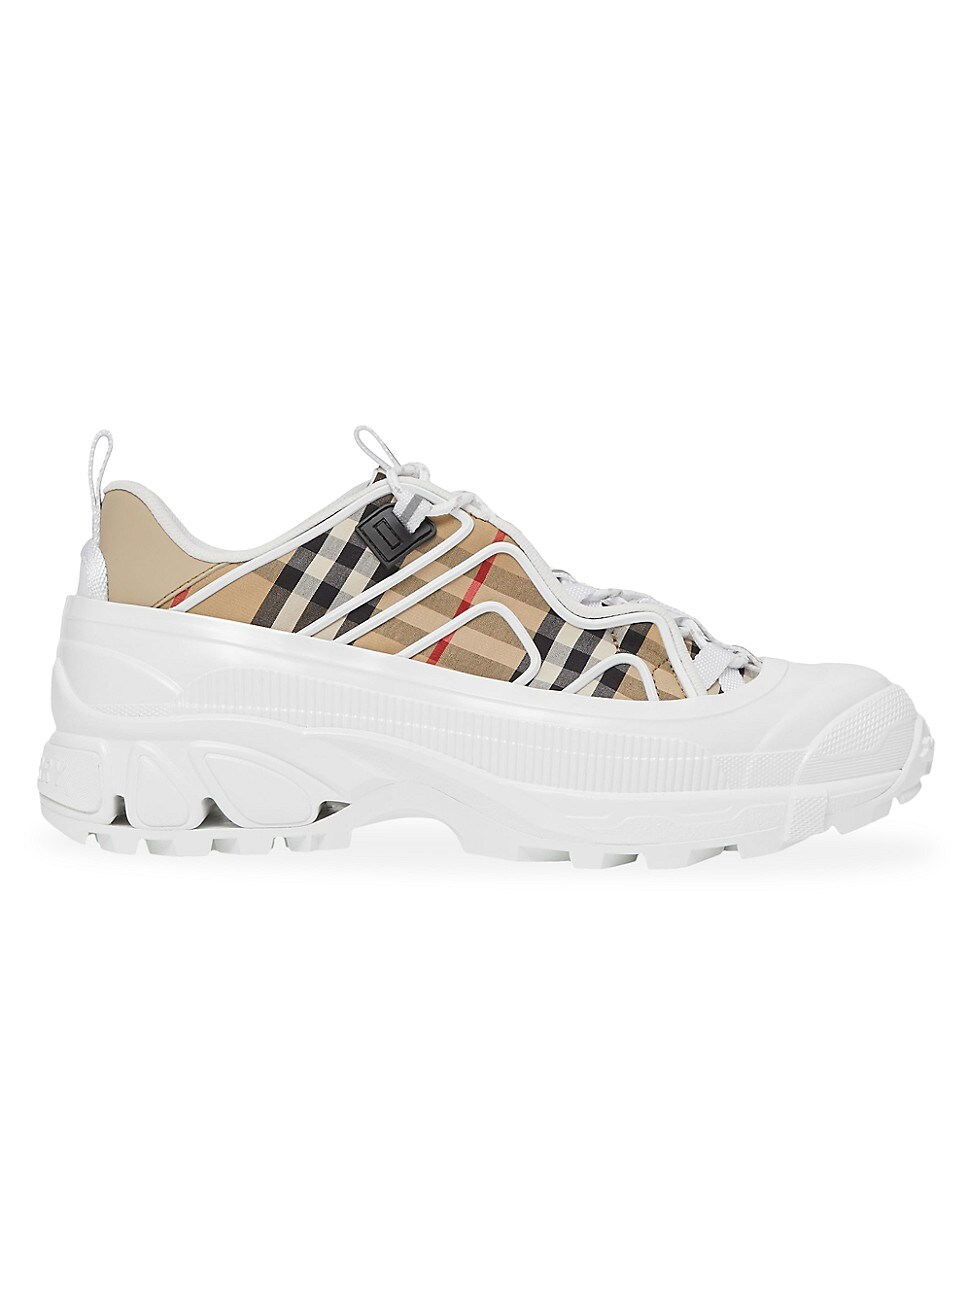 Burberry Suedes MEN'S ARTHUR VINTAGE CHECK COTTON & LEATHER CHUNKY SNEAKERS